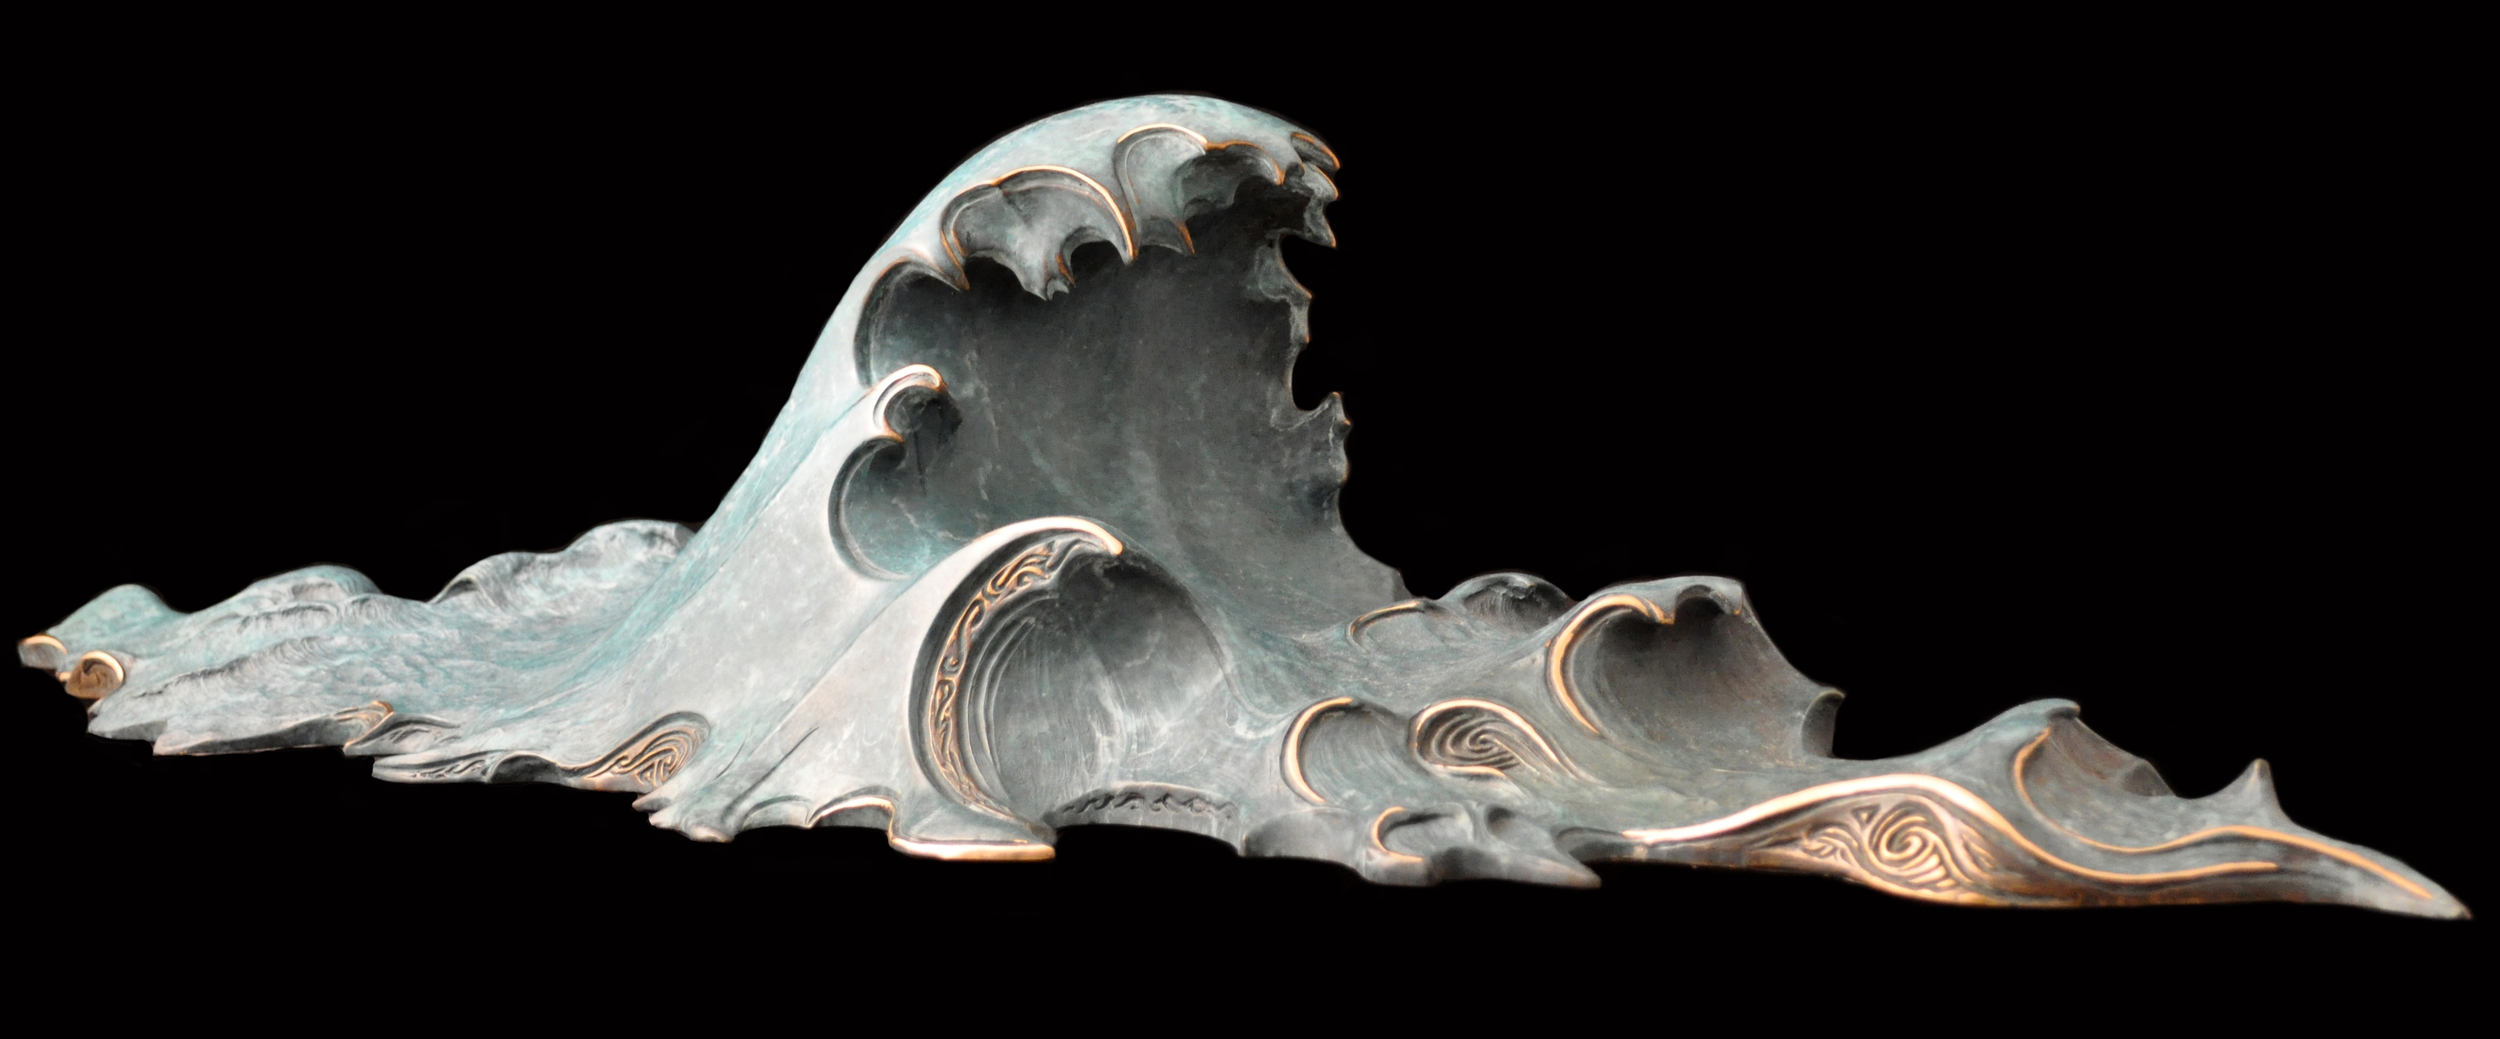 bronze-wave-sculpture-john-maisano-1.jpg